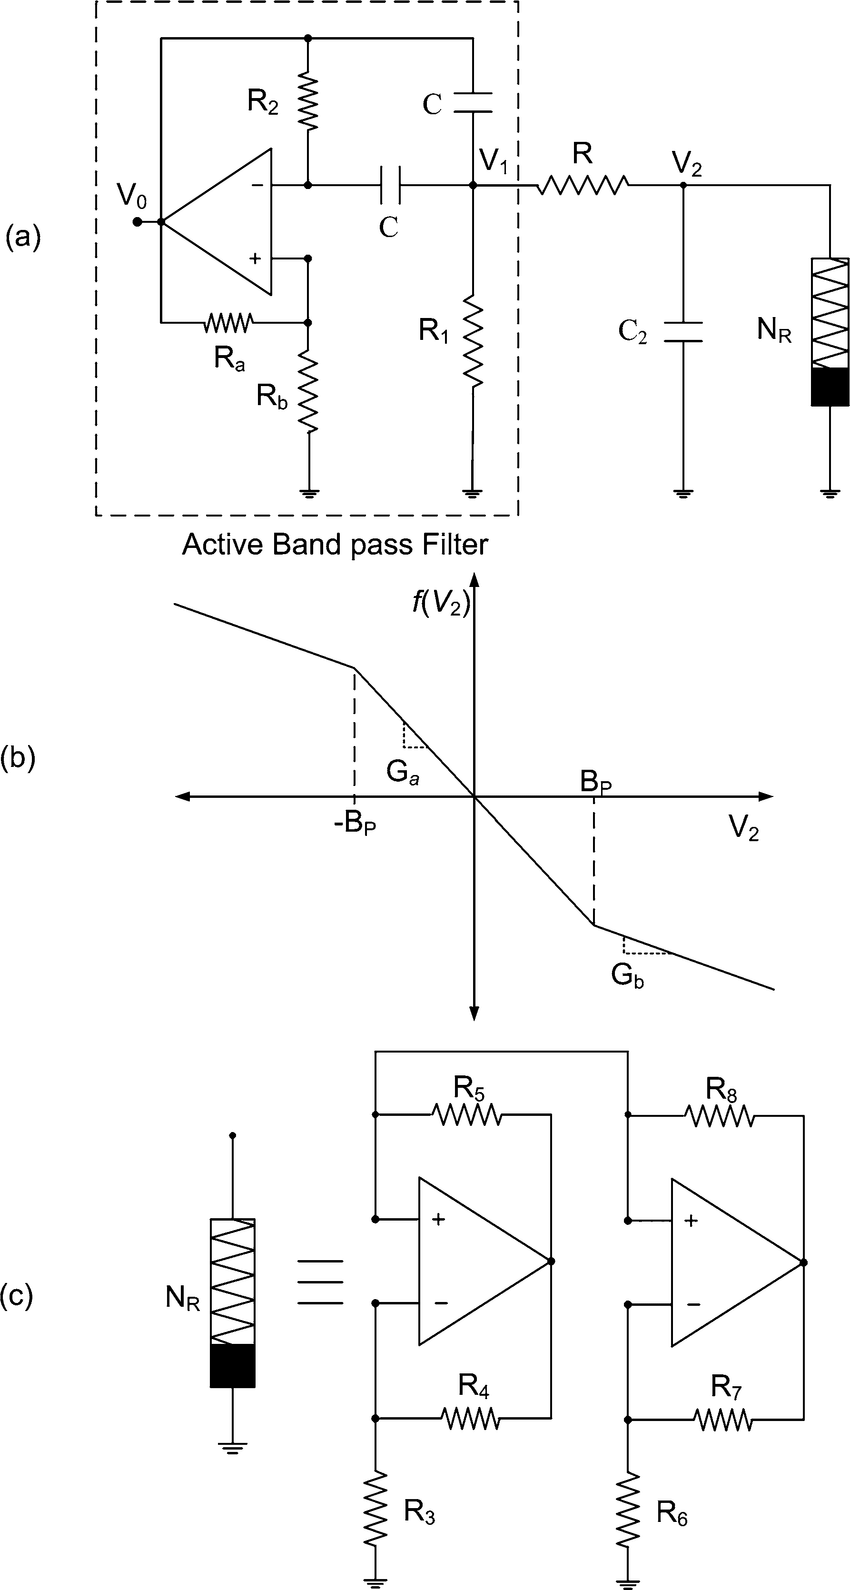 medium resolution of  a active band pass filter based chua s circuit b characteristics of